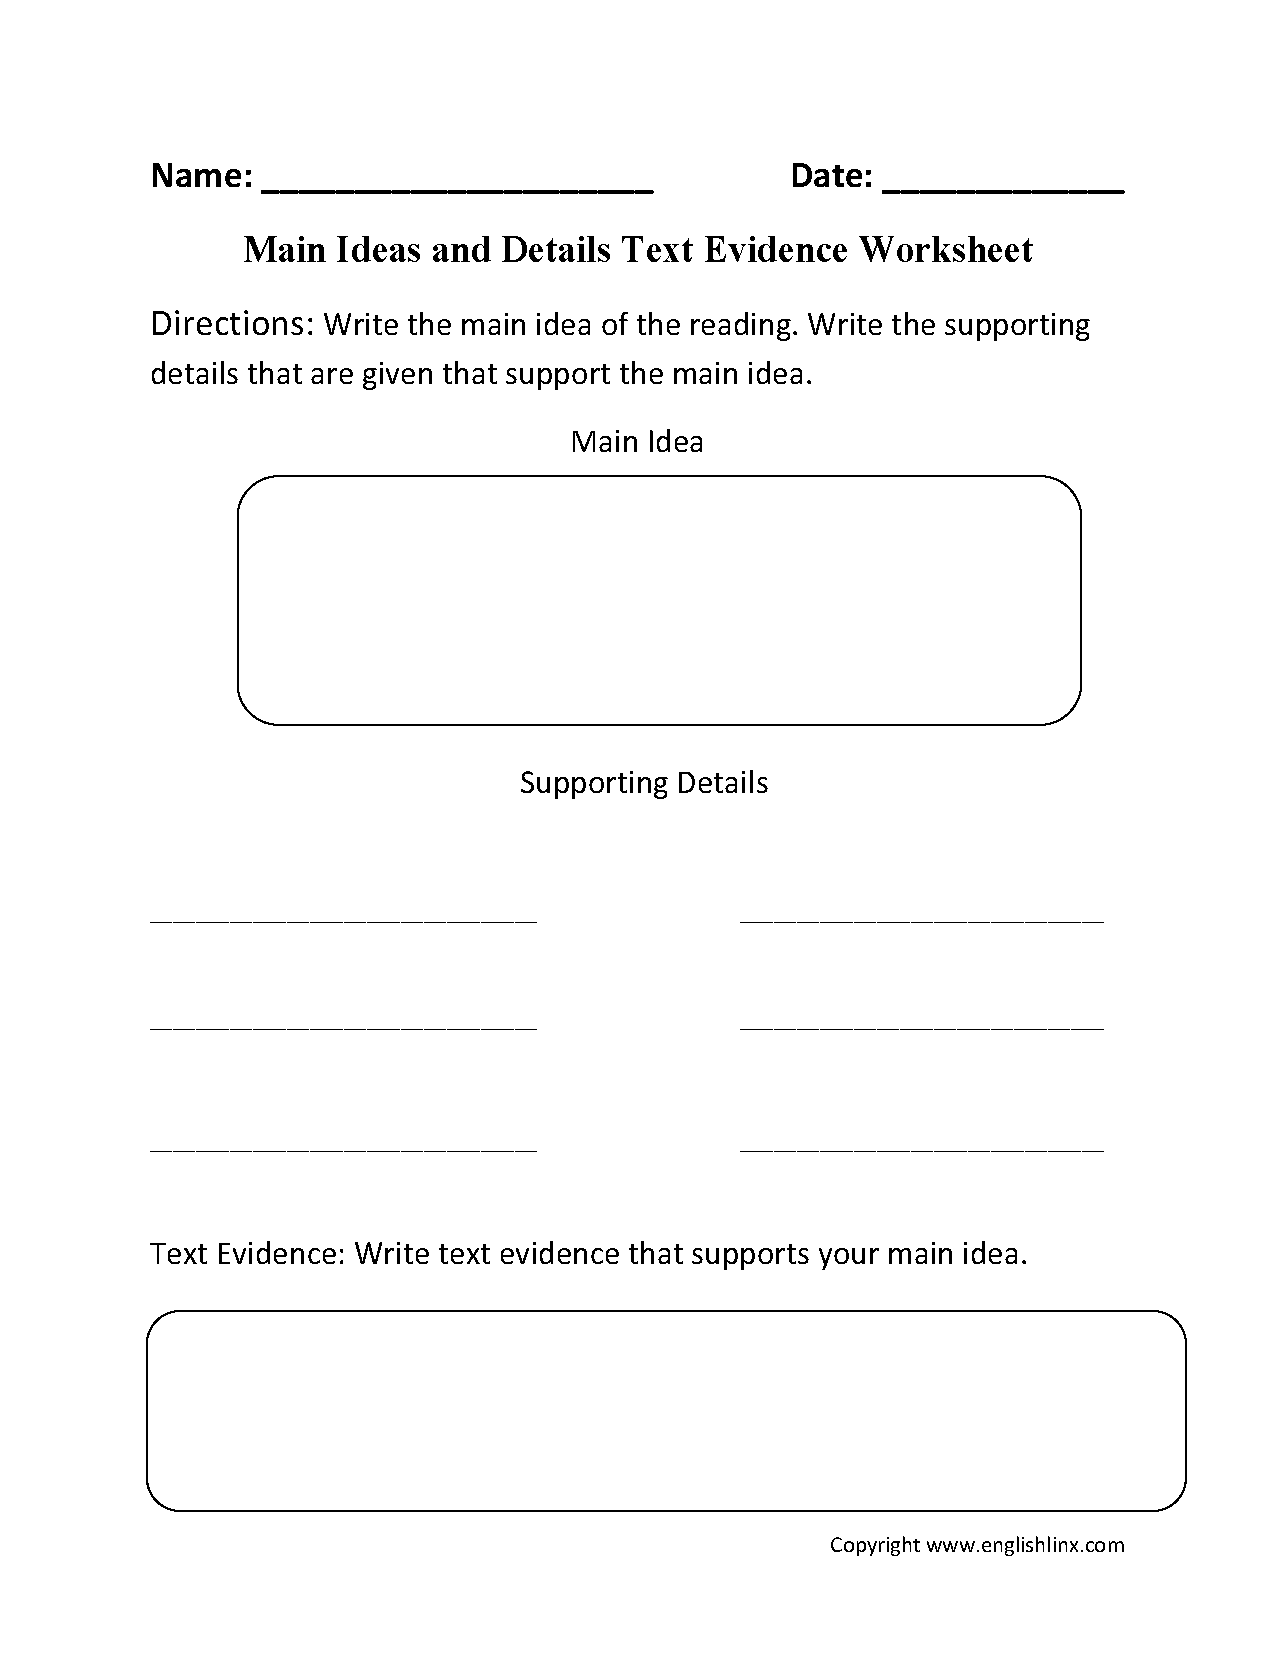 Worksheets Main Idea And Supporting Details Worksheets 4th Grade reading worksheets main idea text evidence worksheet